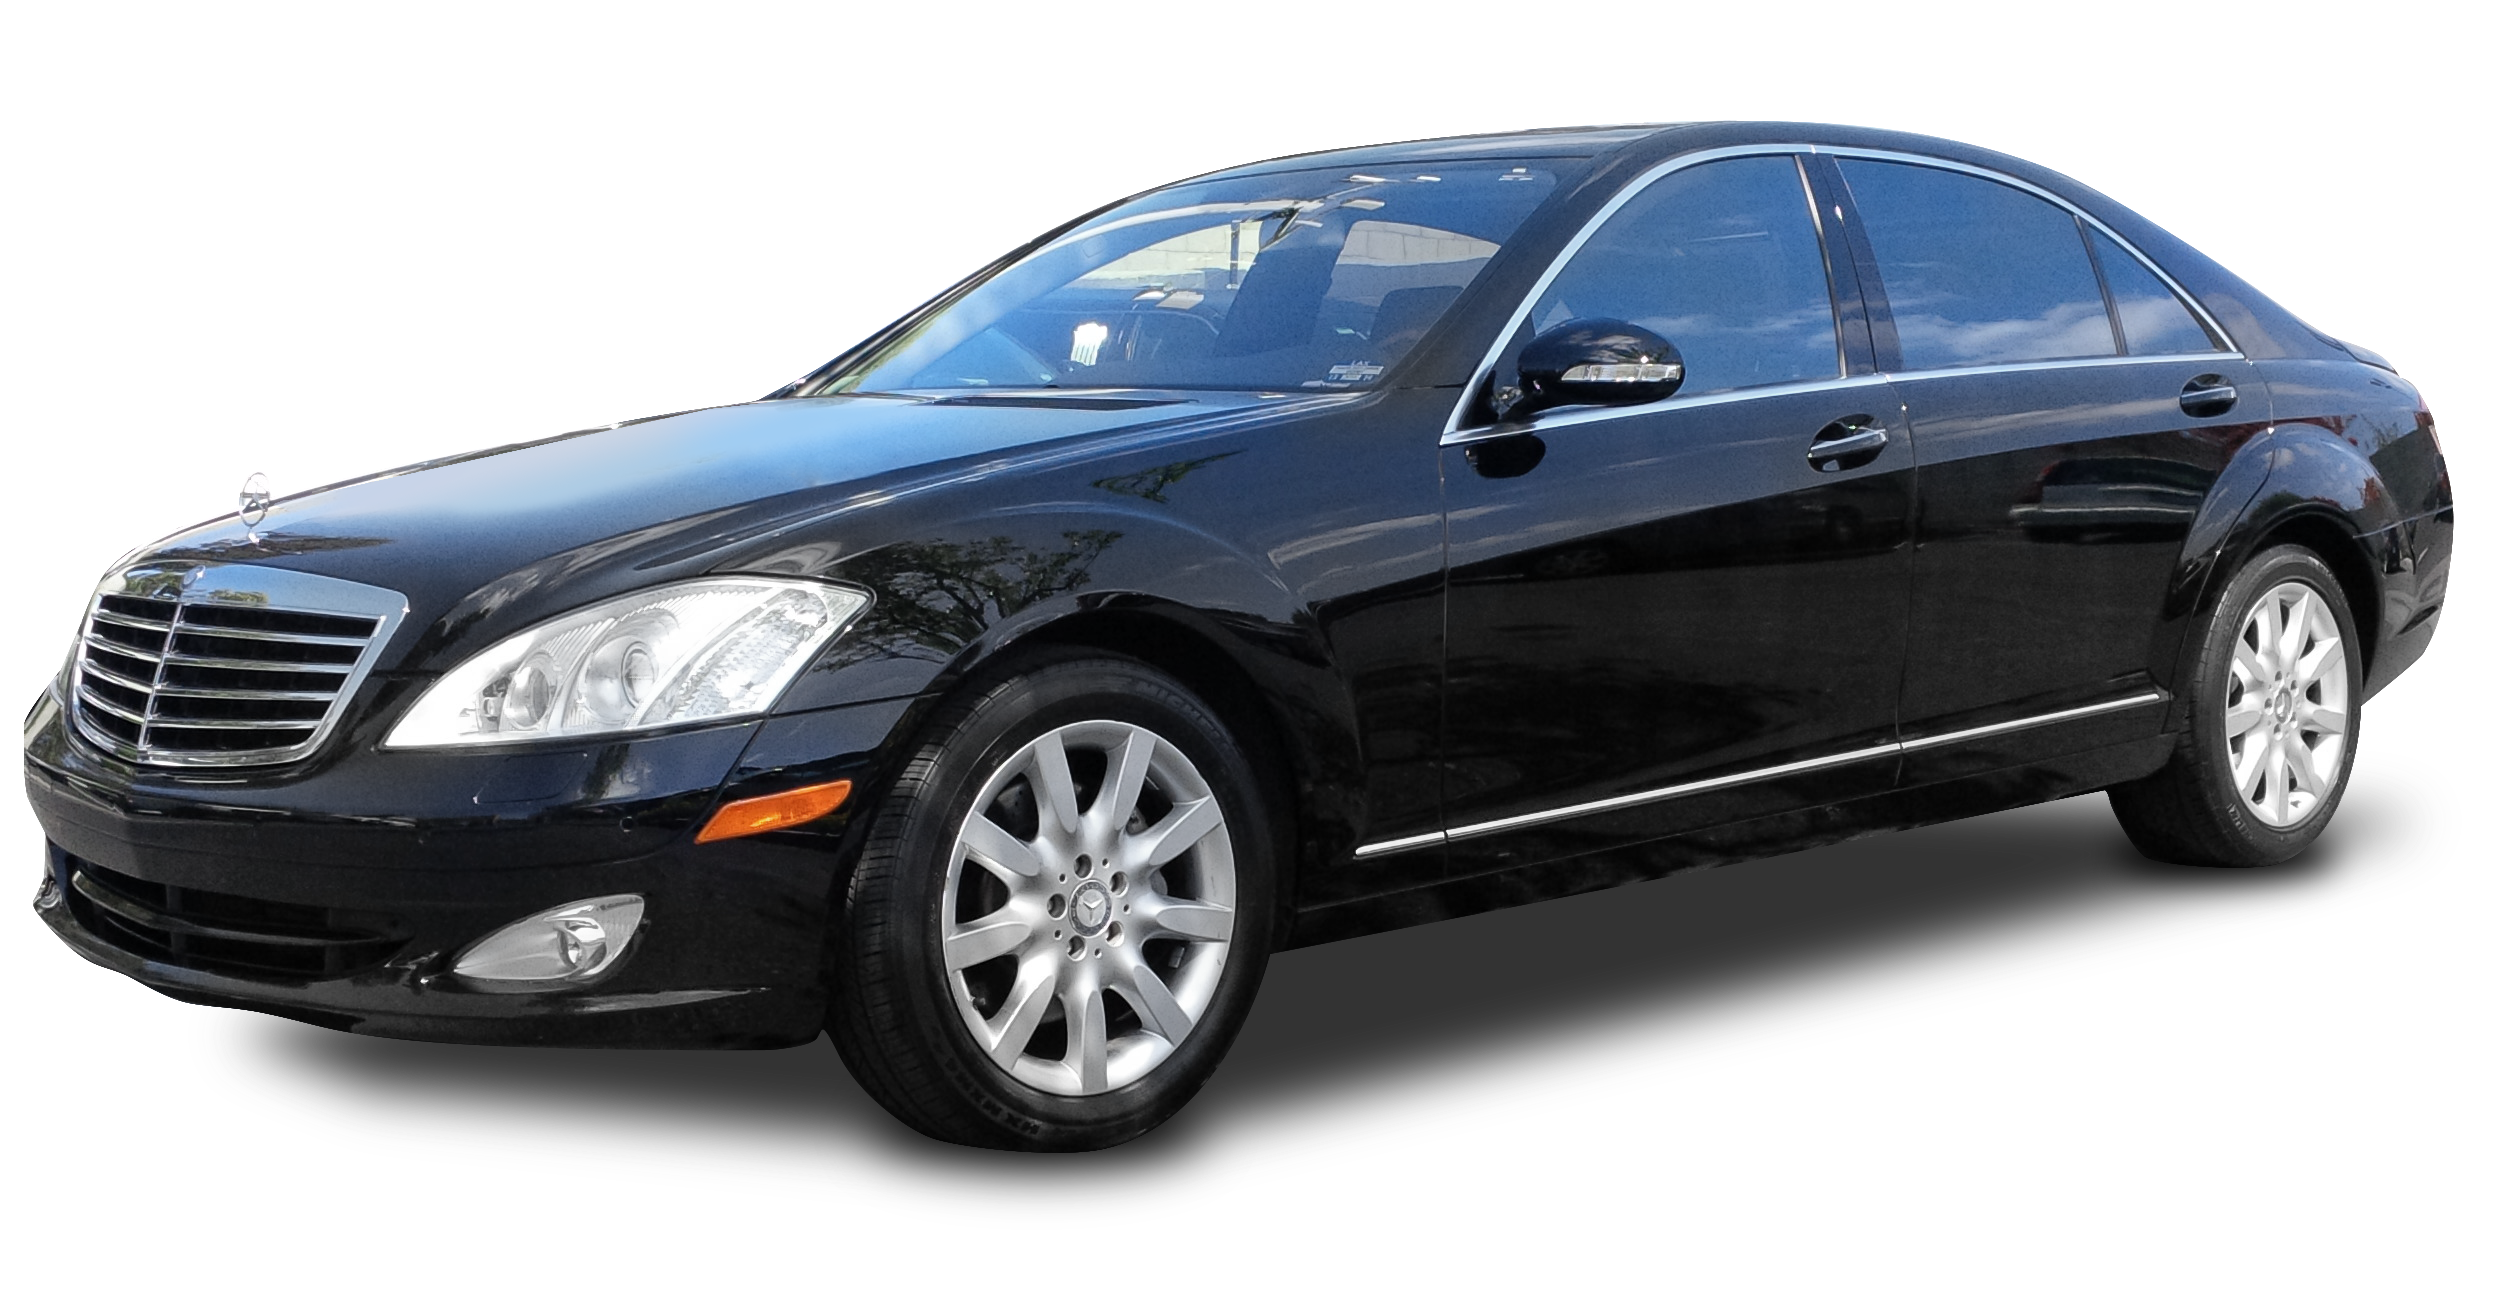 Mercedes benz s550 rental services in orange county for Mercedes benz of orange county